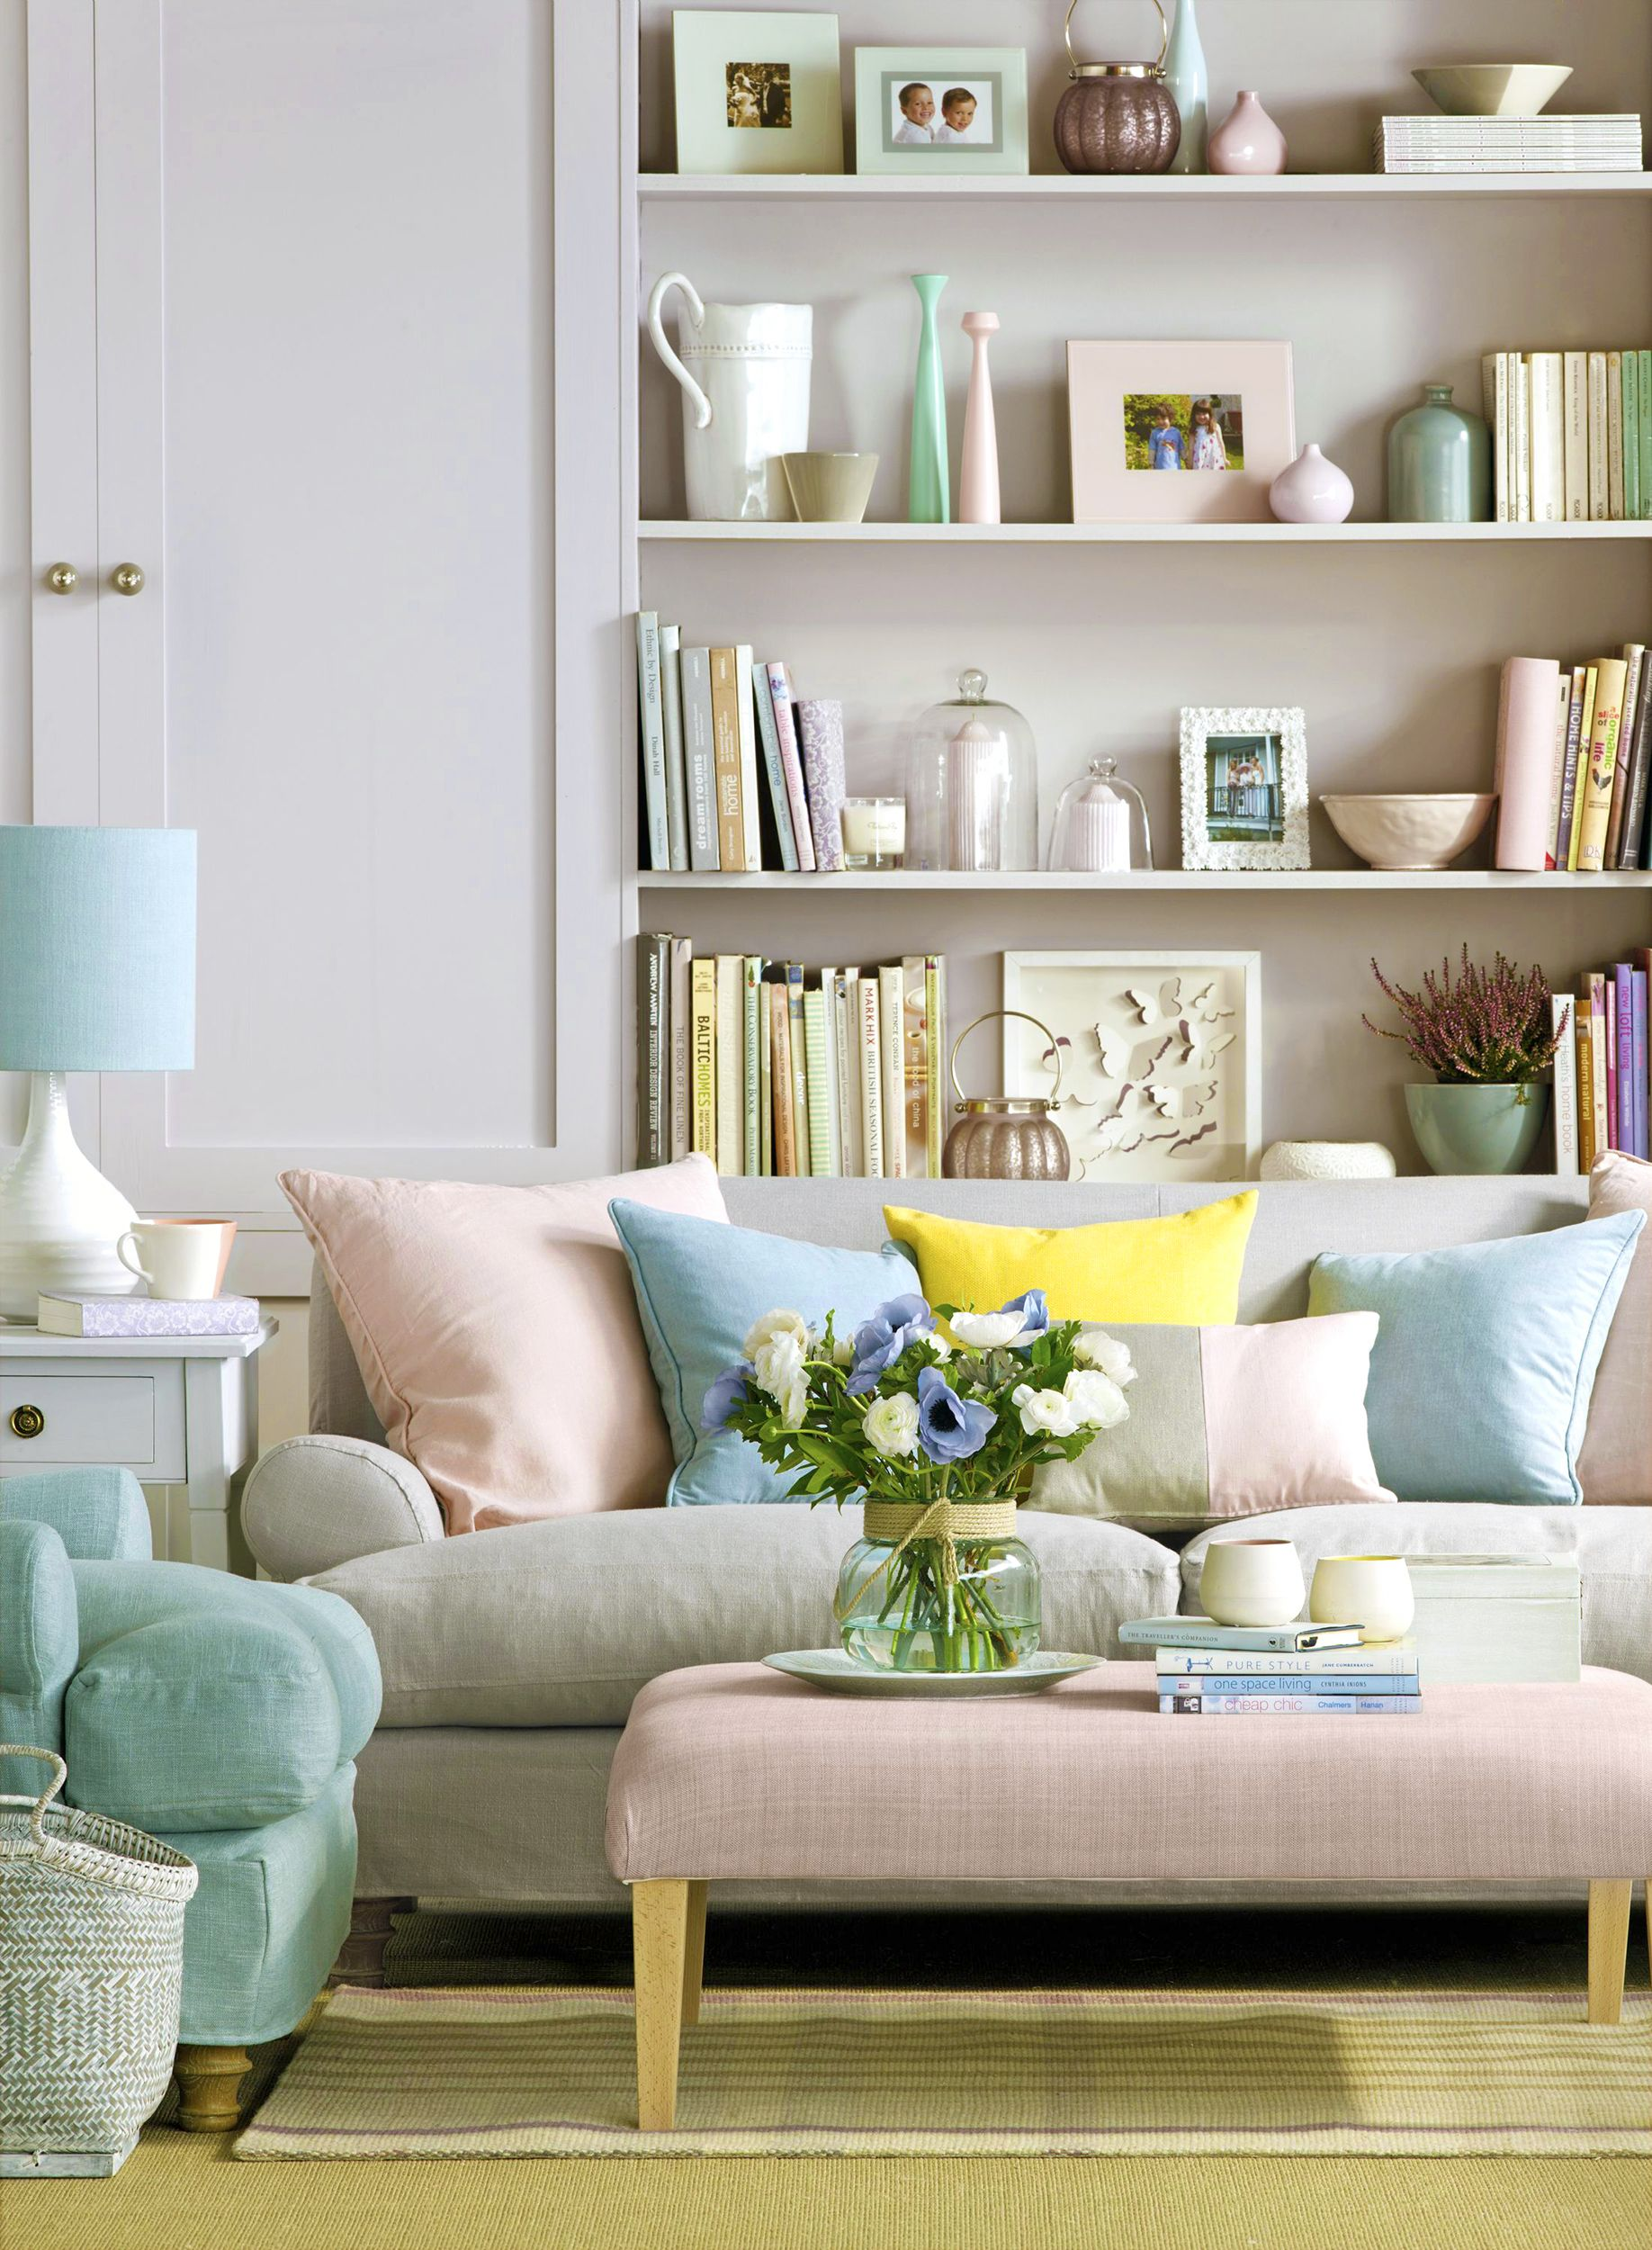 20 Spring Decor Ideas To Freshen Up Your Home Best Spring Decorating Ideas For The Home